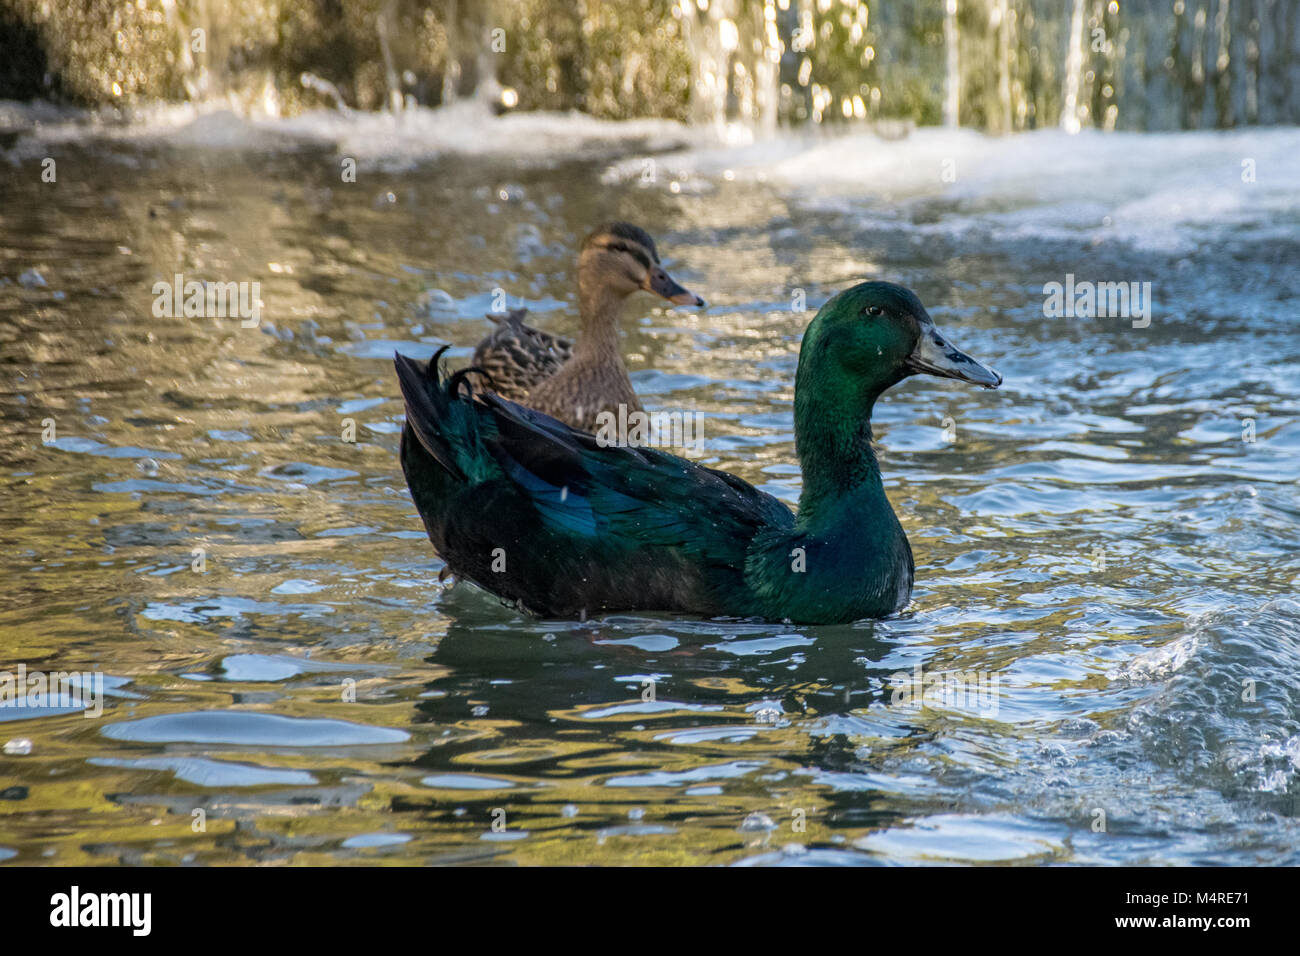 cayuga duck stockfotos cayuga duck bilder alamy. Black Bedroom Furniture Sets. Home Design Ideas